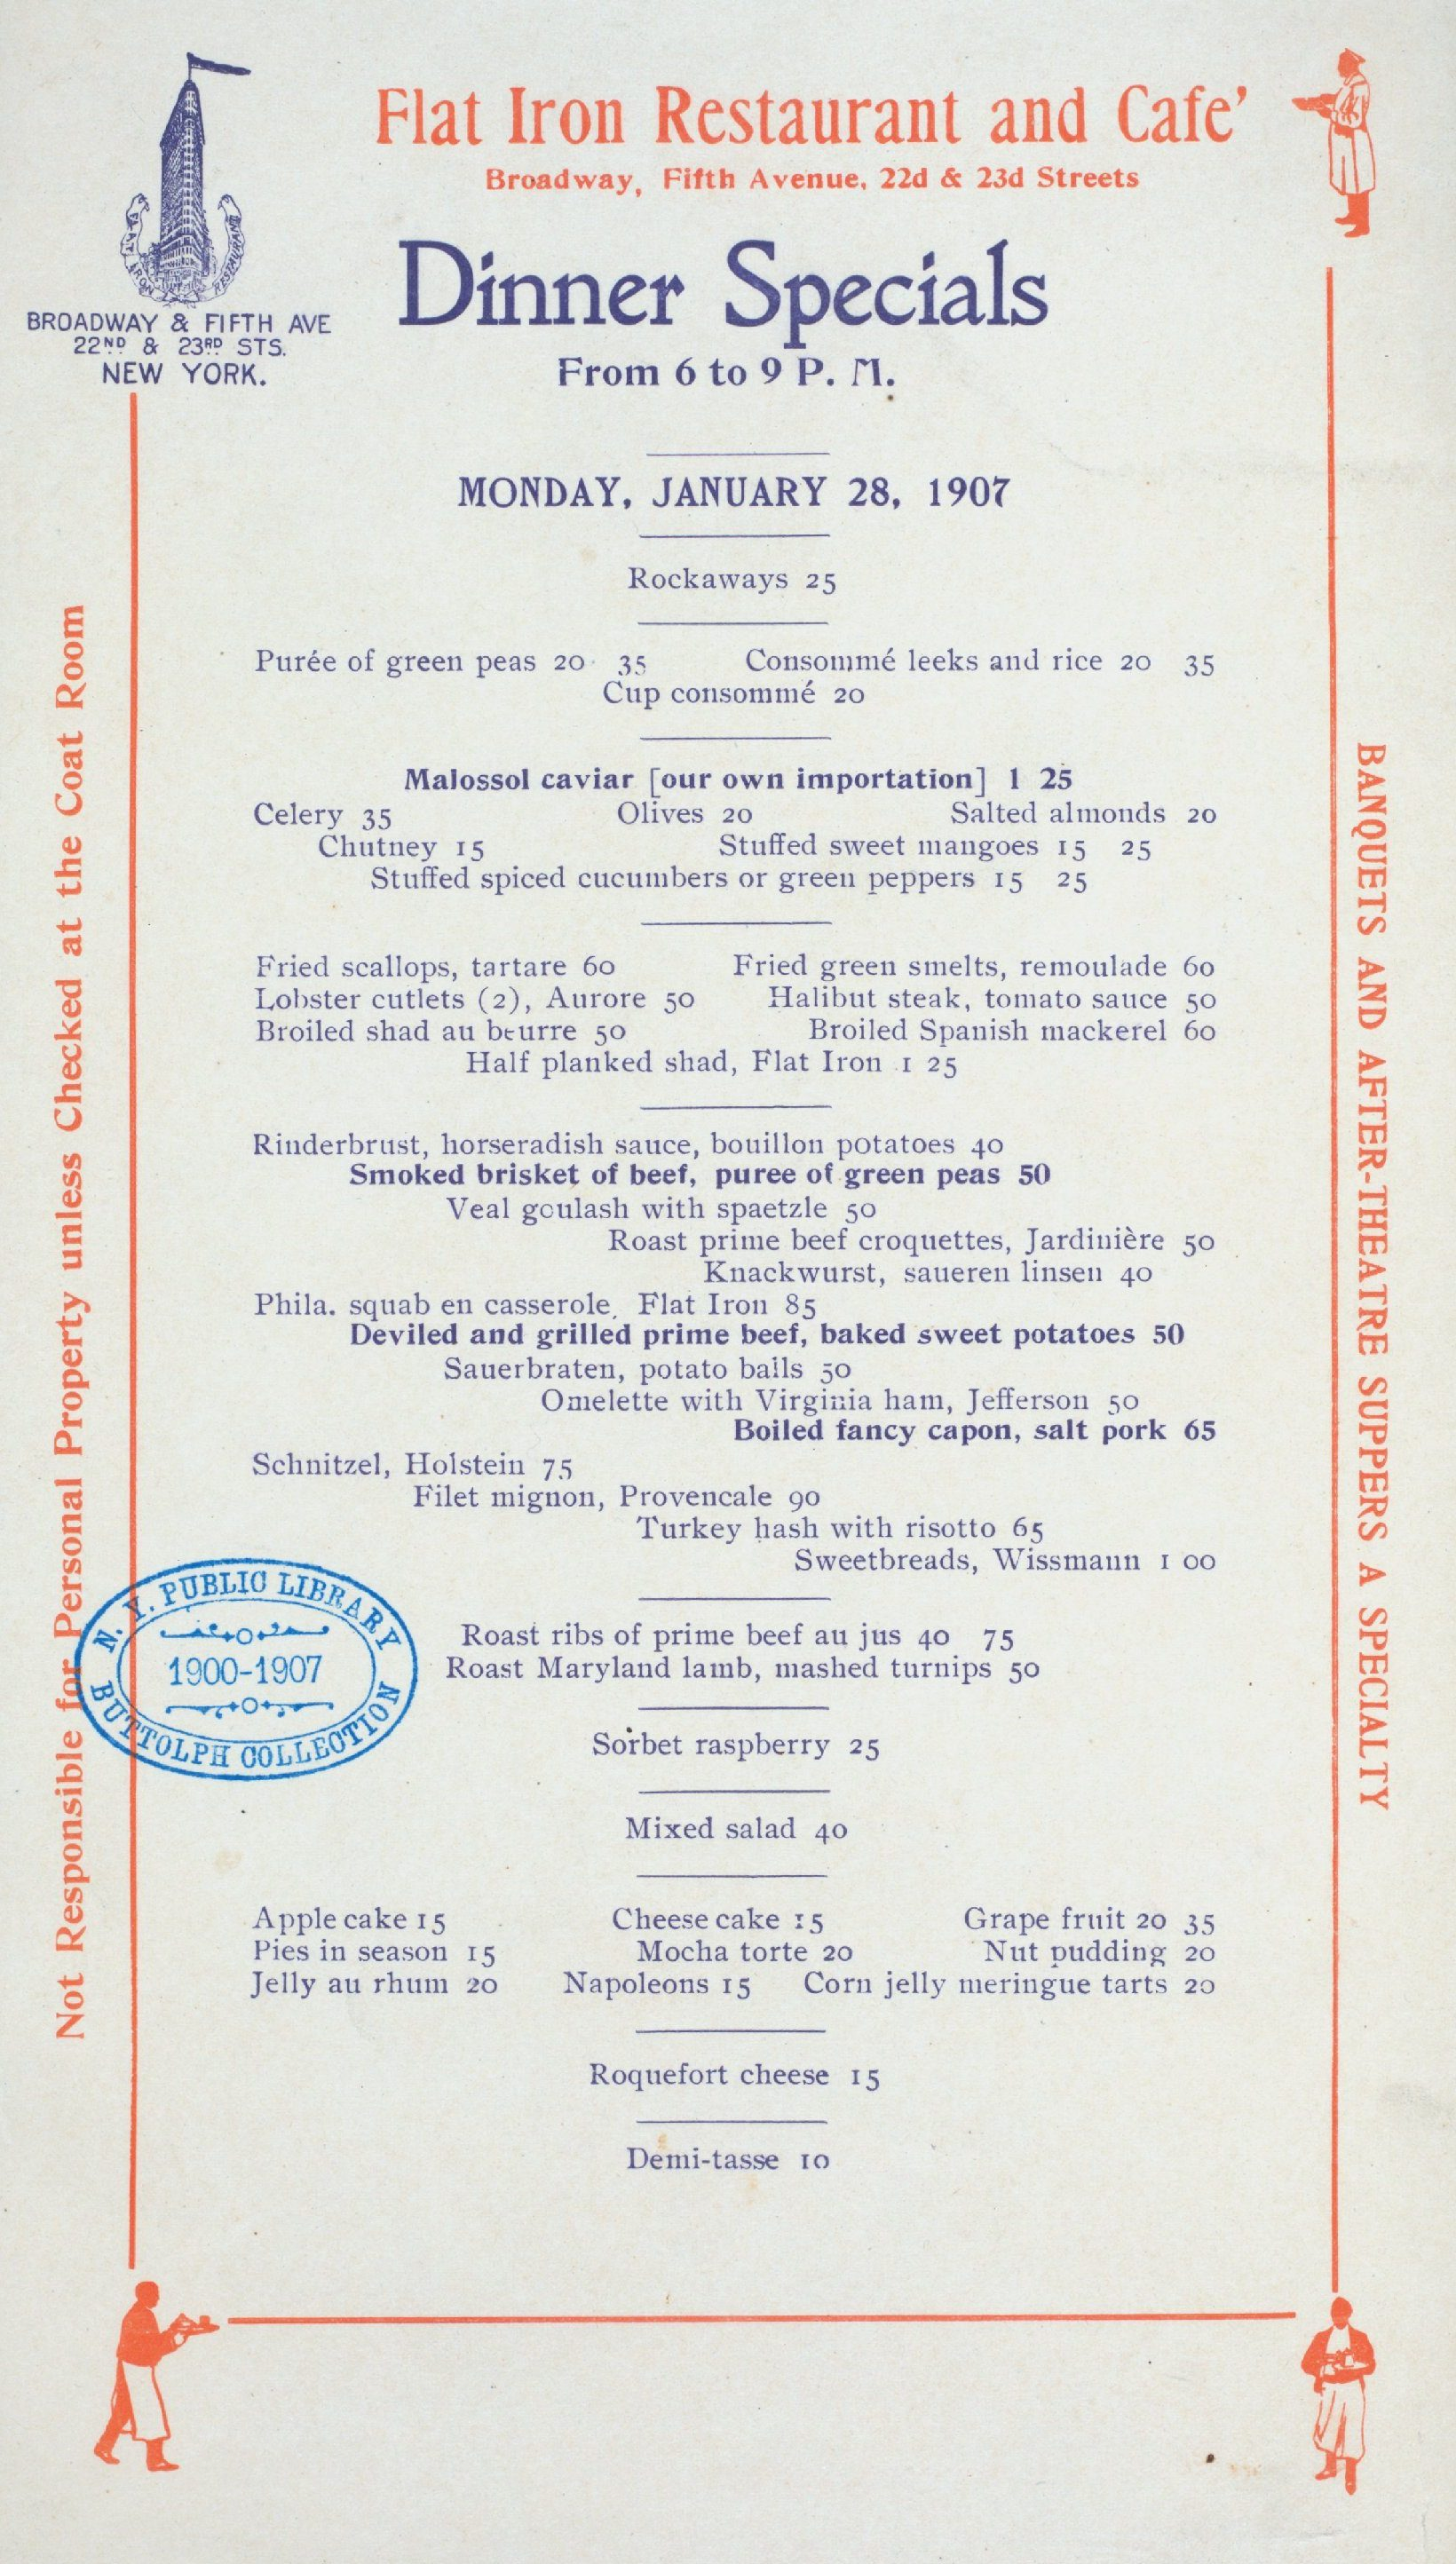 Ragtime Cafe Lunch Menu